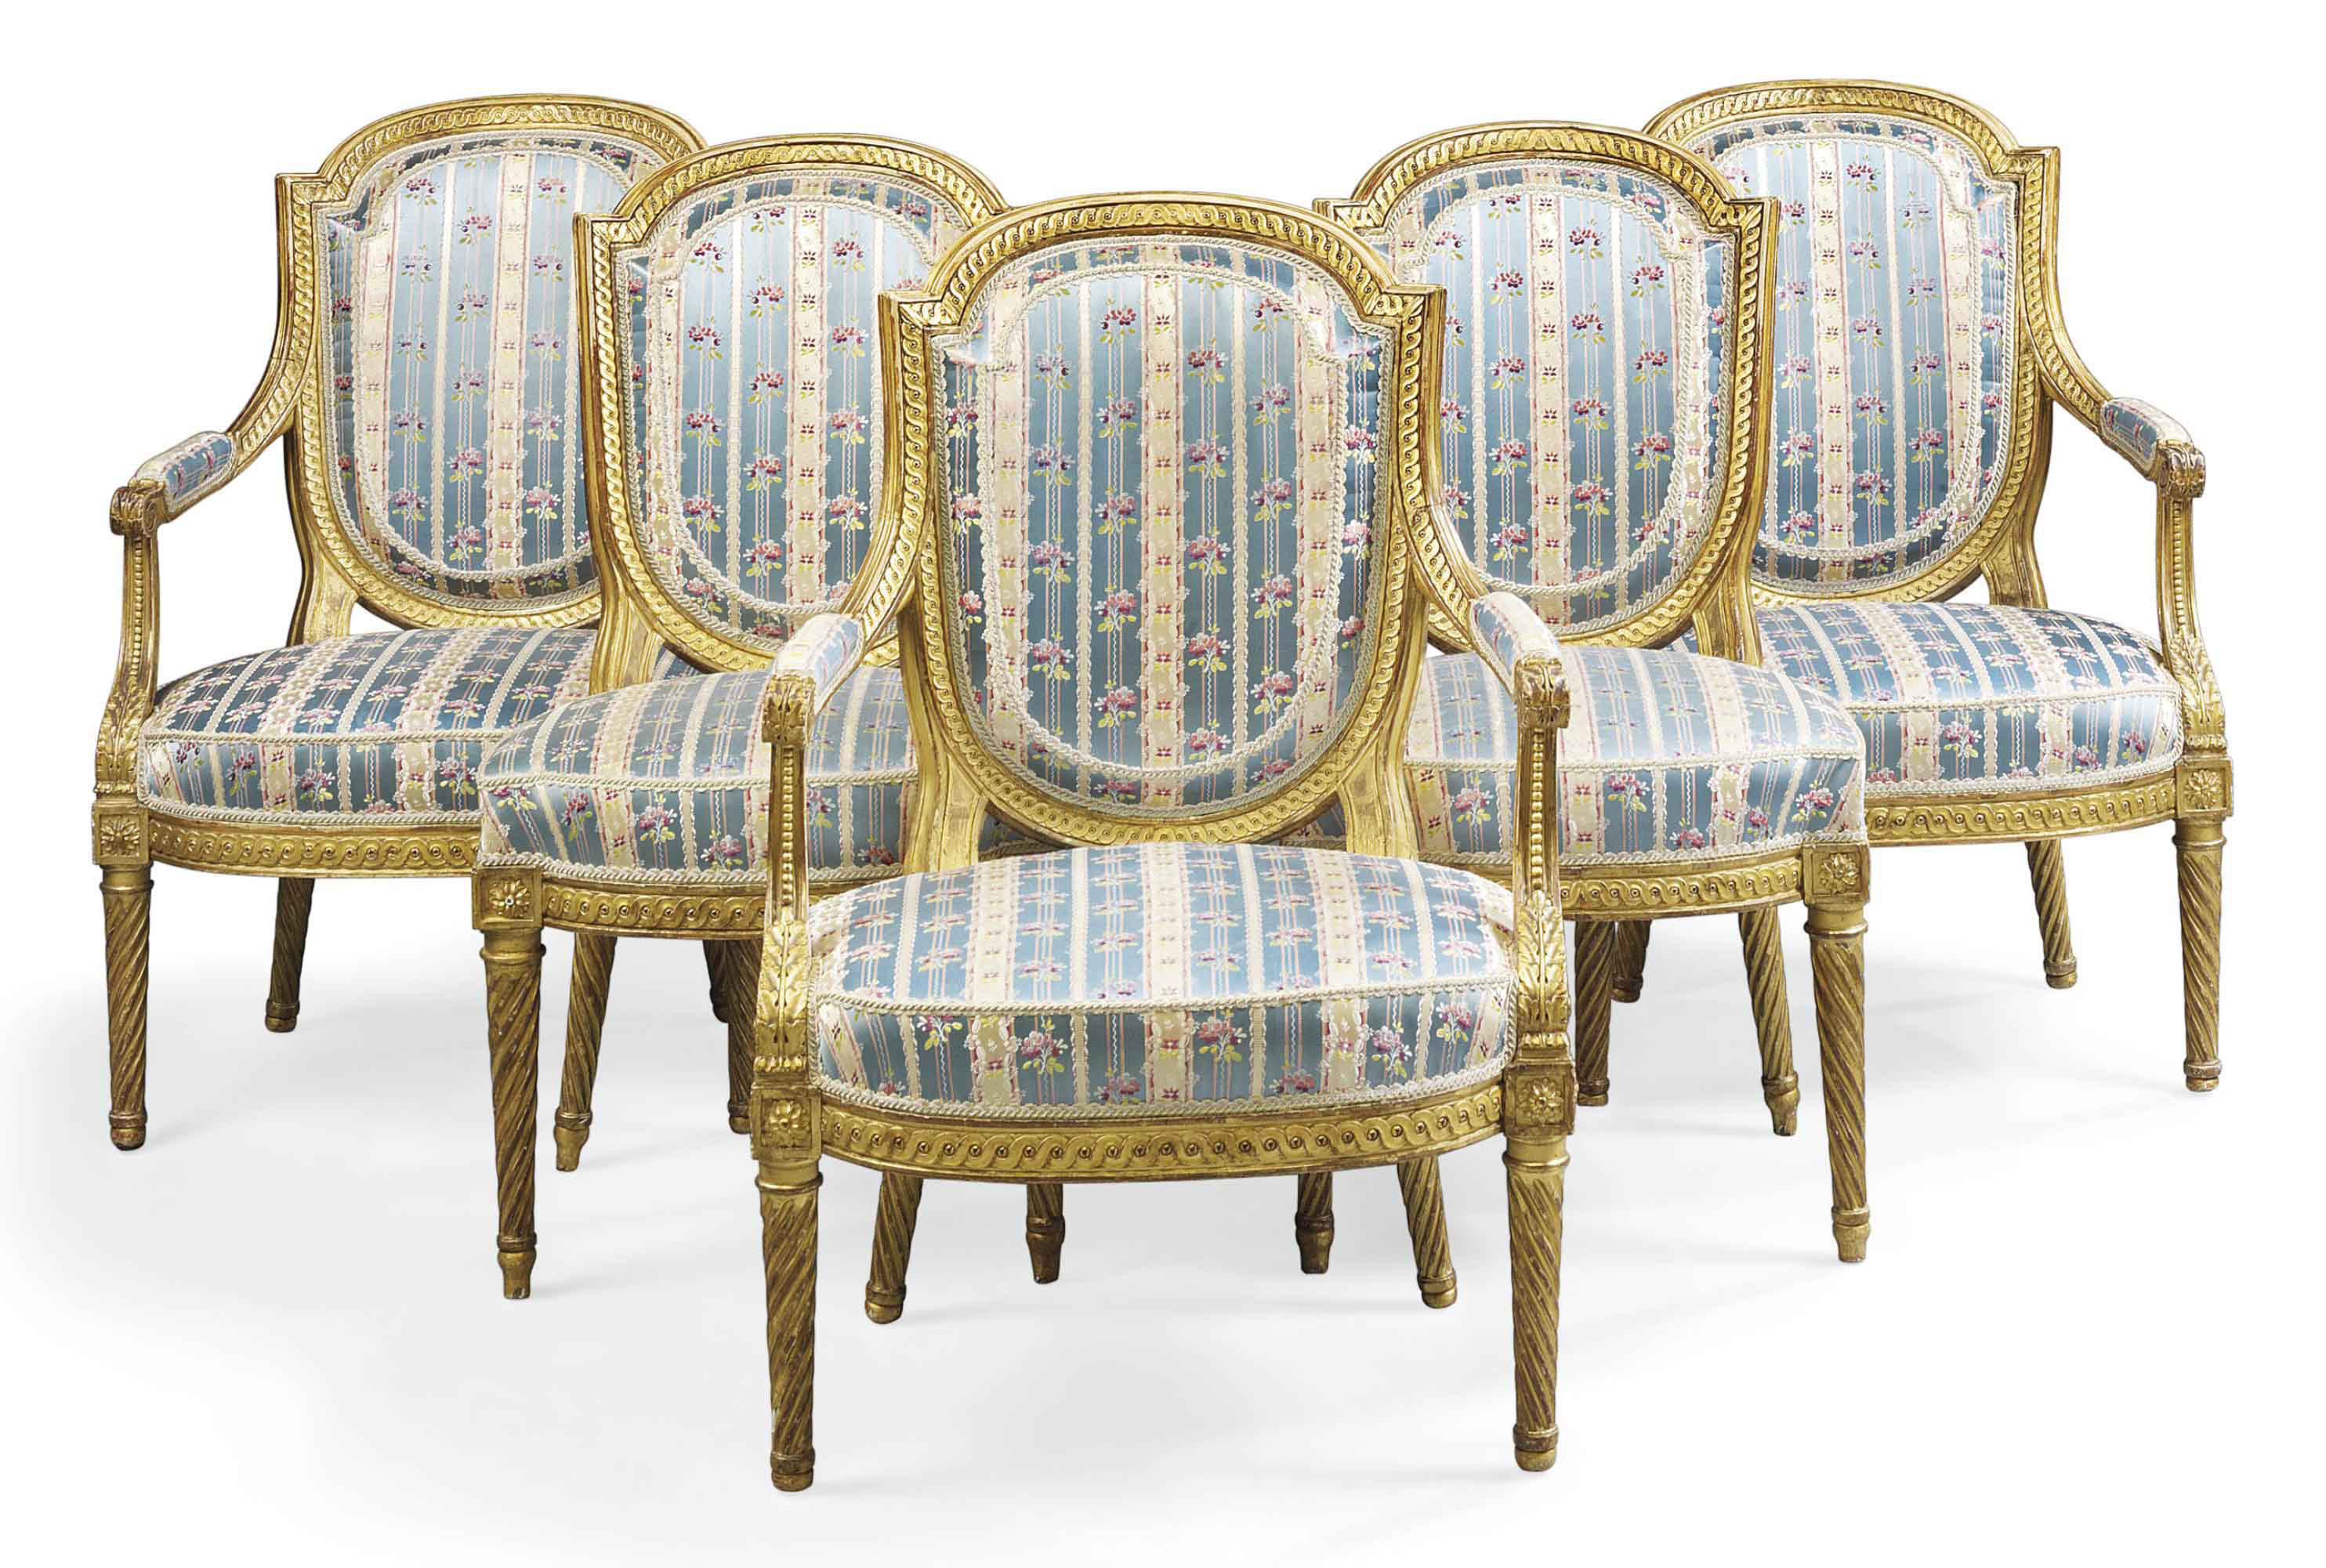 A SET OF THREE LOUIS XVI GILTWOOD FAUTEUILS WITH TWO SIDE CHAIRS